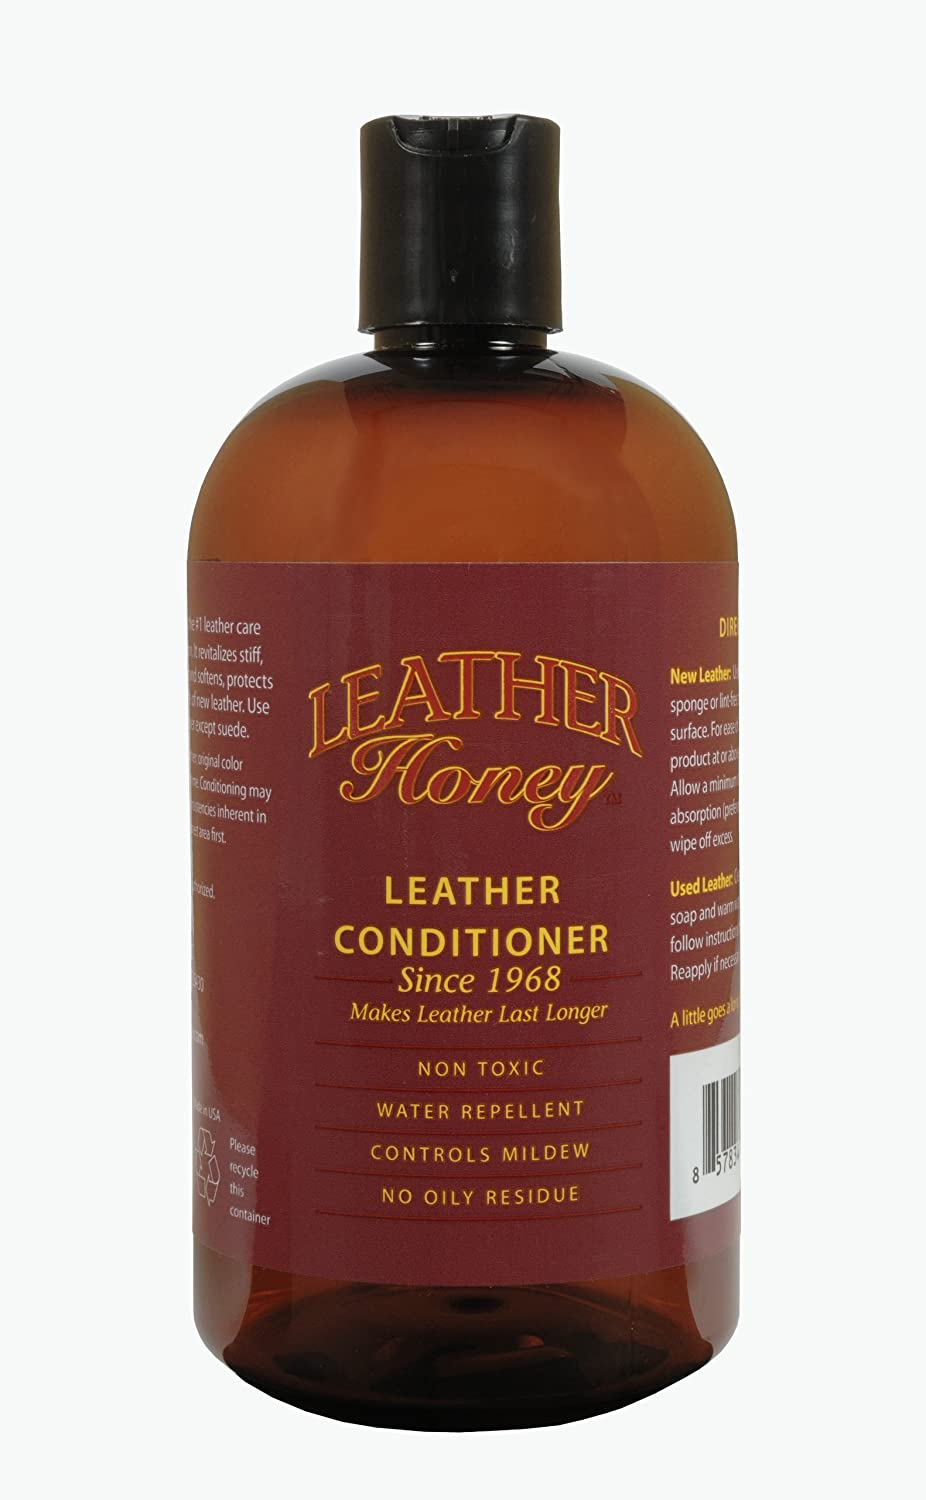 Best Leather Conditioner Comparison and Reviews